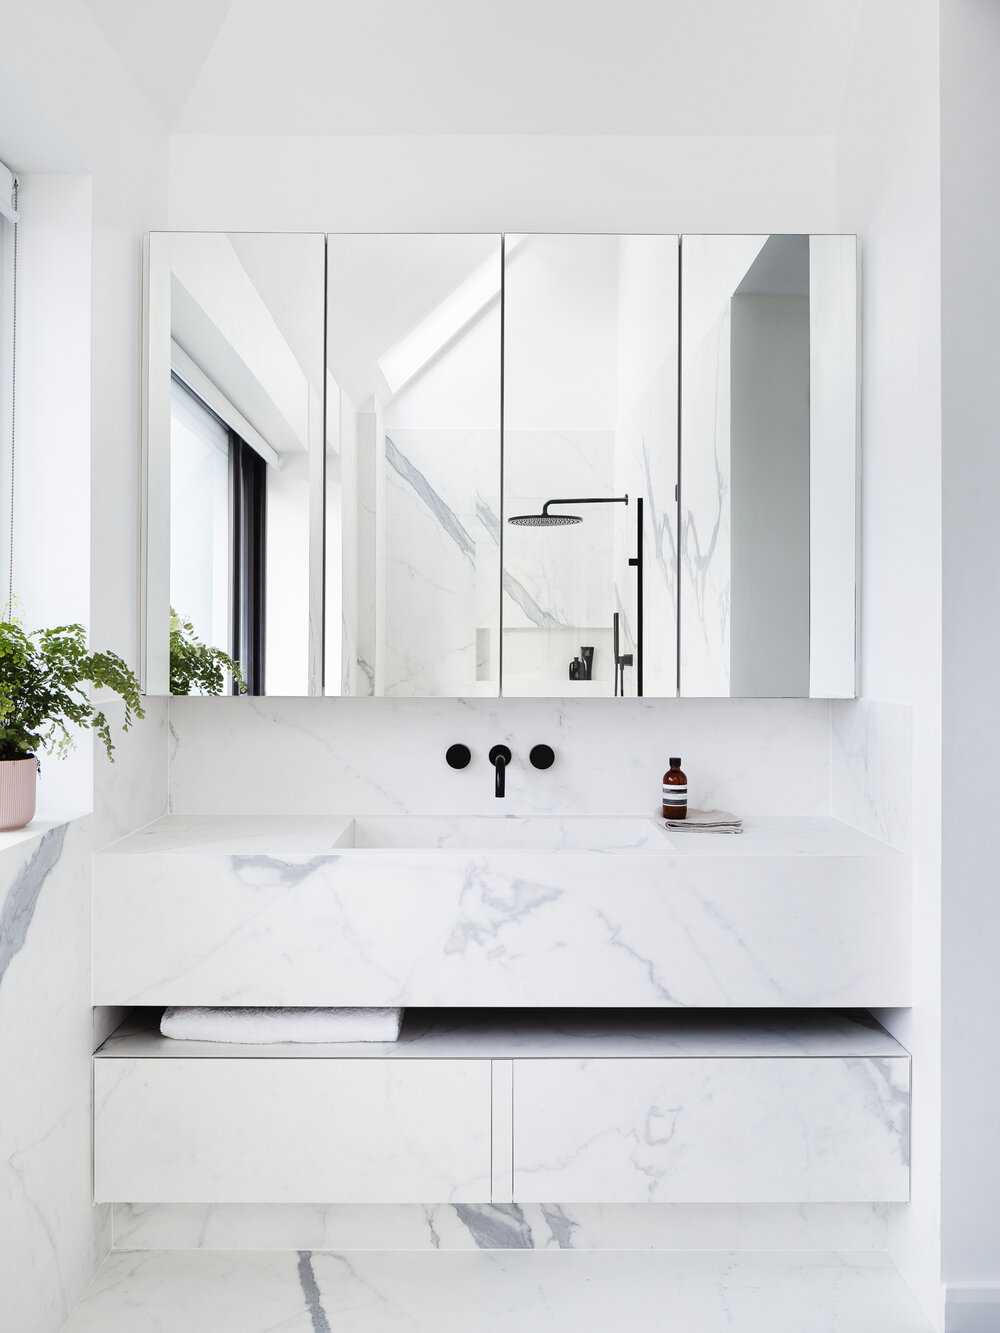 Ensuite Wetroom for Amog Goldreich Architects